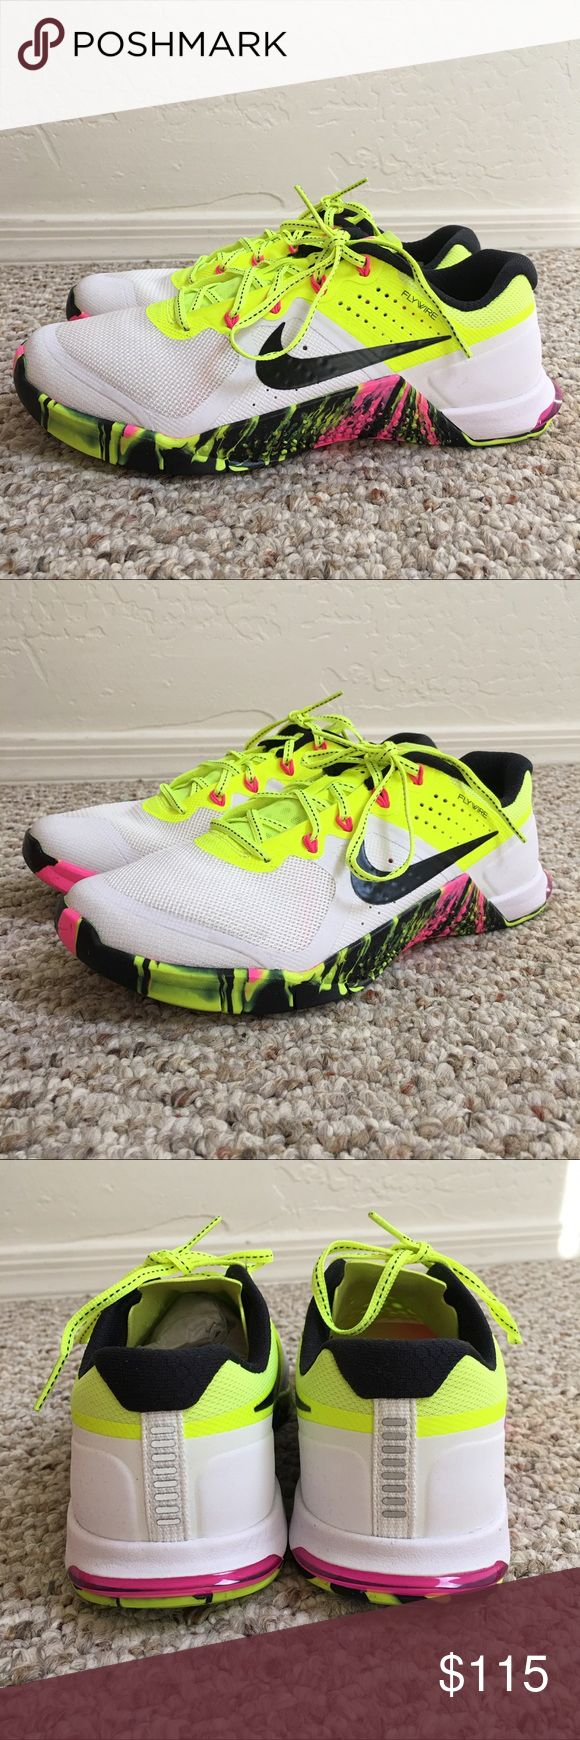 NIKE METCON 2 OC TRAINER RUNNING SHOE BRAND NEW   SHOES ONLY NO BOX  NEVER WORN  WOMENS NIKE METCON 2 OC TRAINER RUNNING SHOE  SIZE 7  COLOR MULTI  SMOKE AND PET FREE HOME Nike Shoes Athletic Shoes